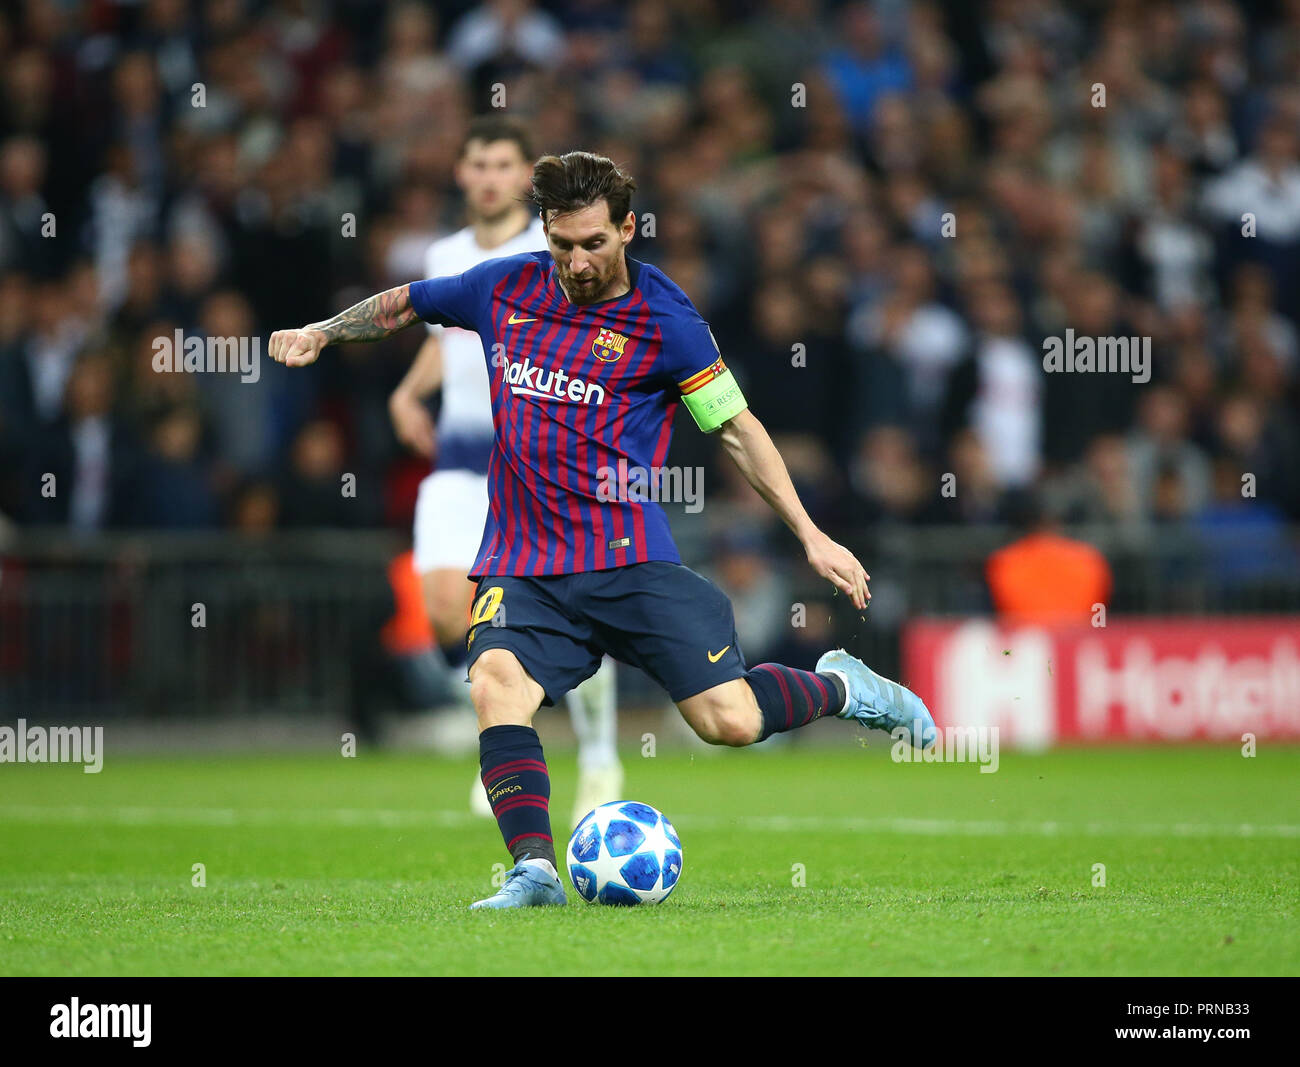 London, UK. 3rd October, 2018. October 3, 2018 - Lionel Messi of Barcelona scores 4th goal.during UEFA Champions League Group B match between Tottenham Hotspur and FC Barcelona at Wembley stadium in London, United Kingdom on 3 October 2018 Credit: AFP7/ZUMA Wire/Alamy Live News Credit: ZUMA Press, Inc./Alamy Live News Stock Photo